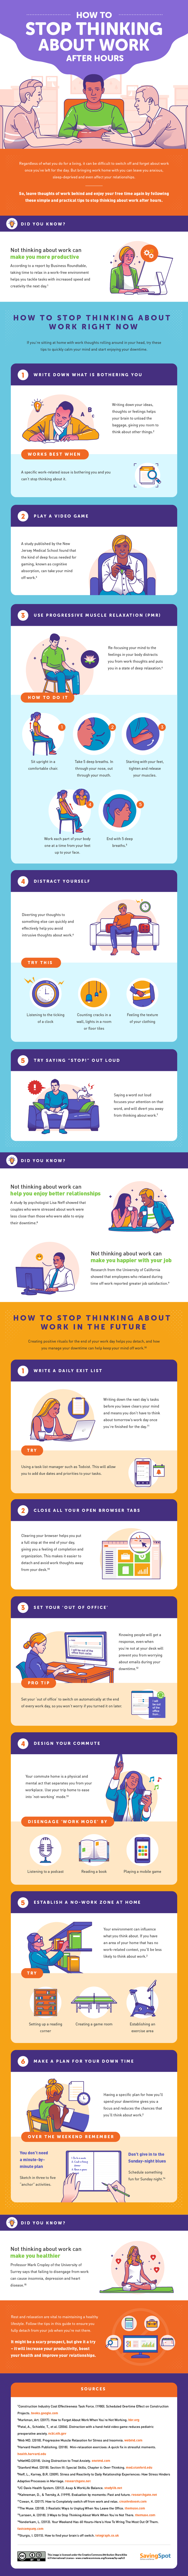 How_to_stop_thinking_about_work_after_hours